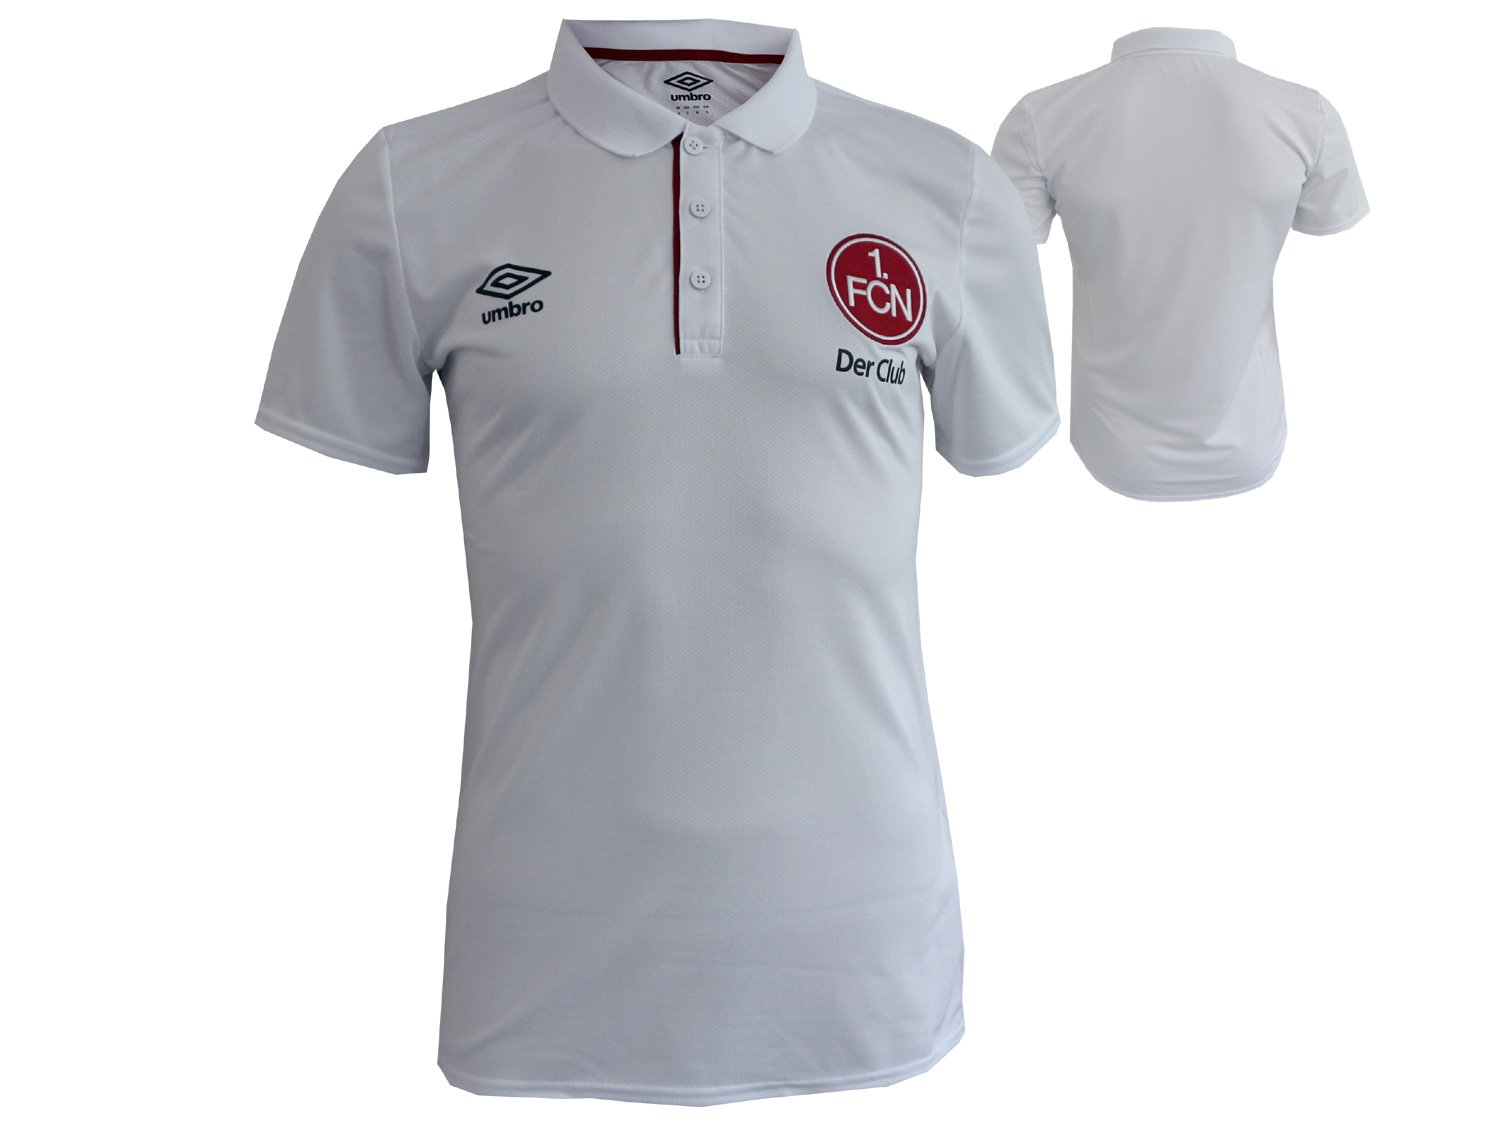 Umbro FC Nurnberg Training Poly Polo Shirt (U) T